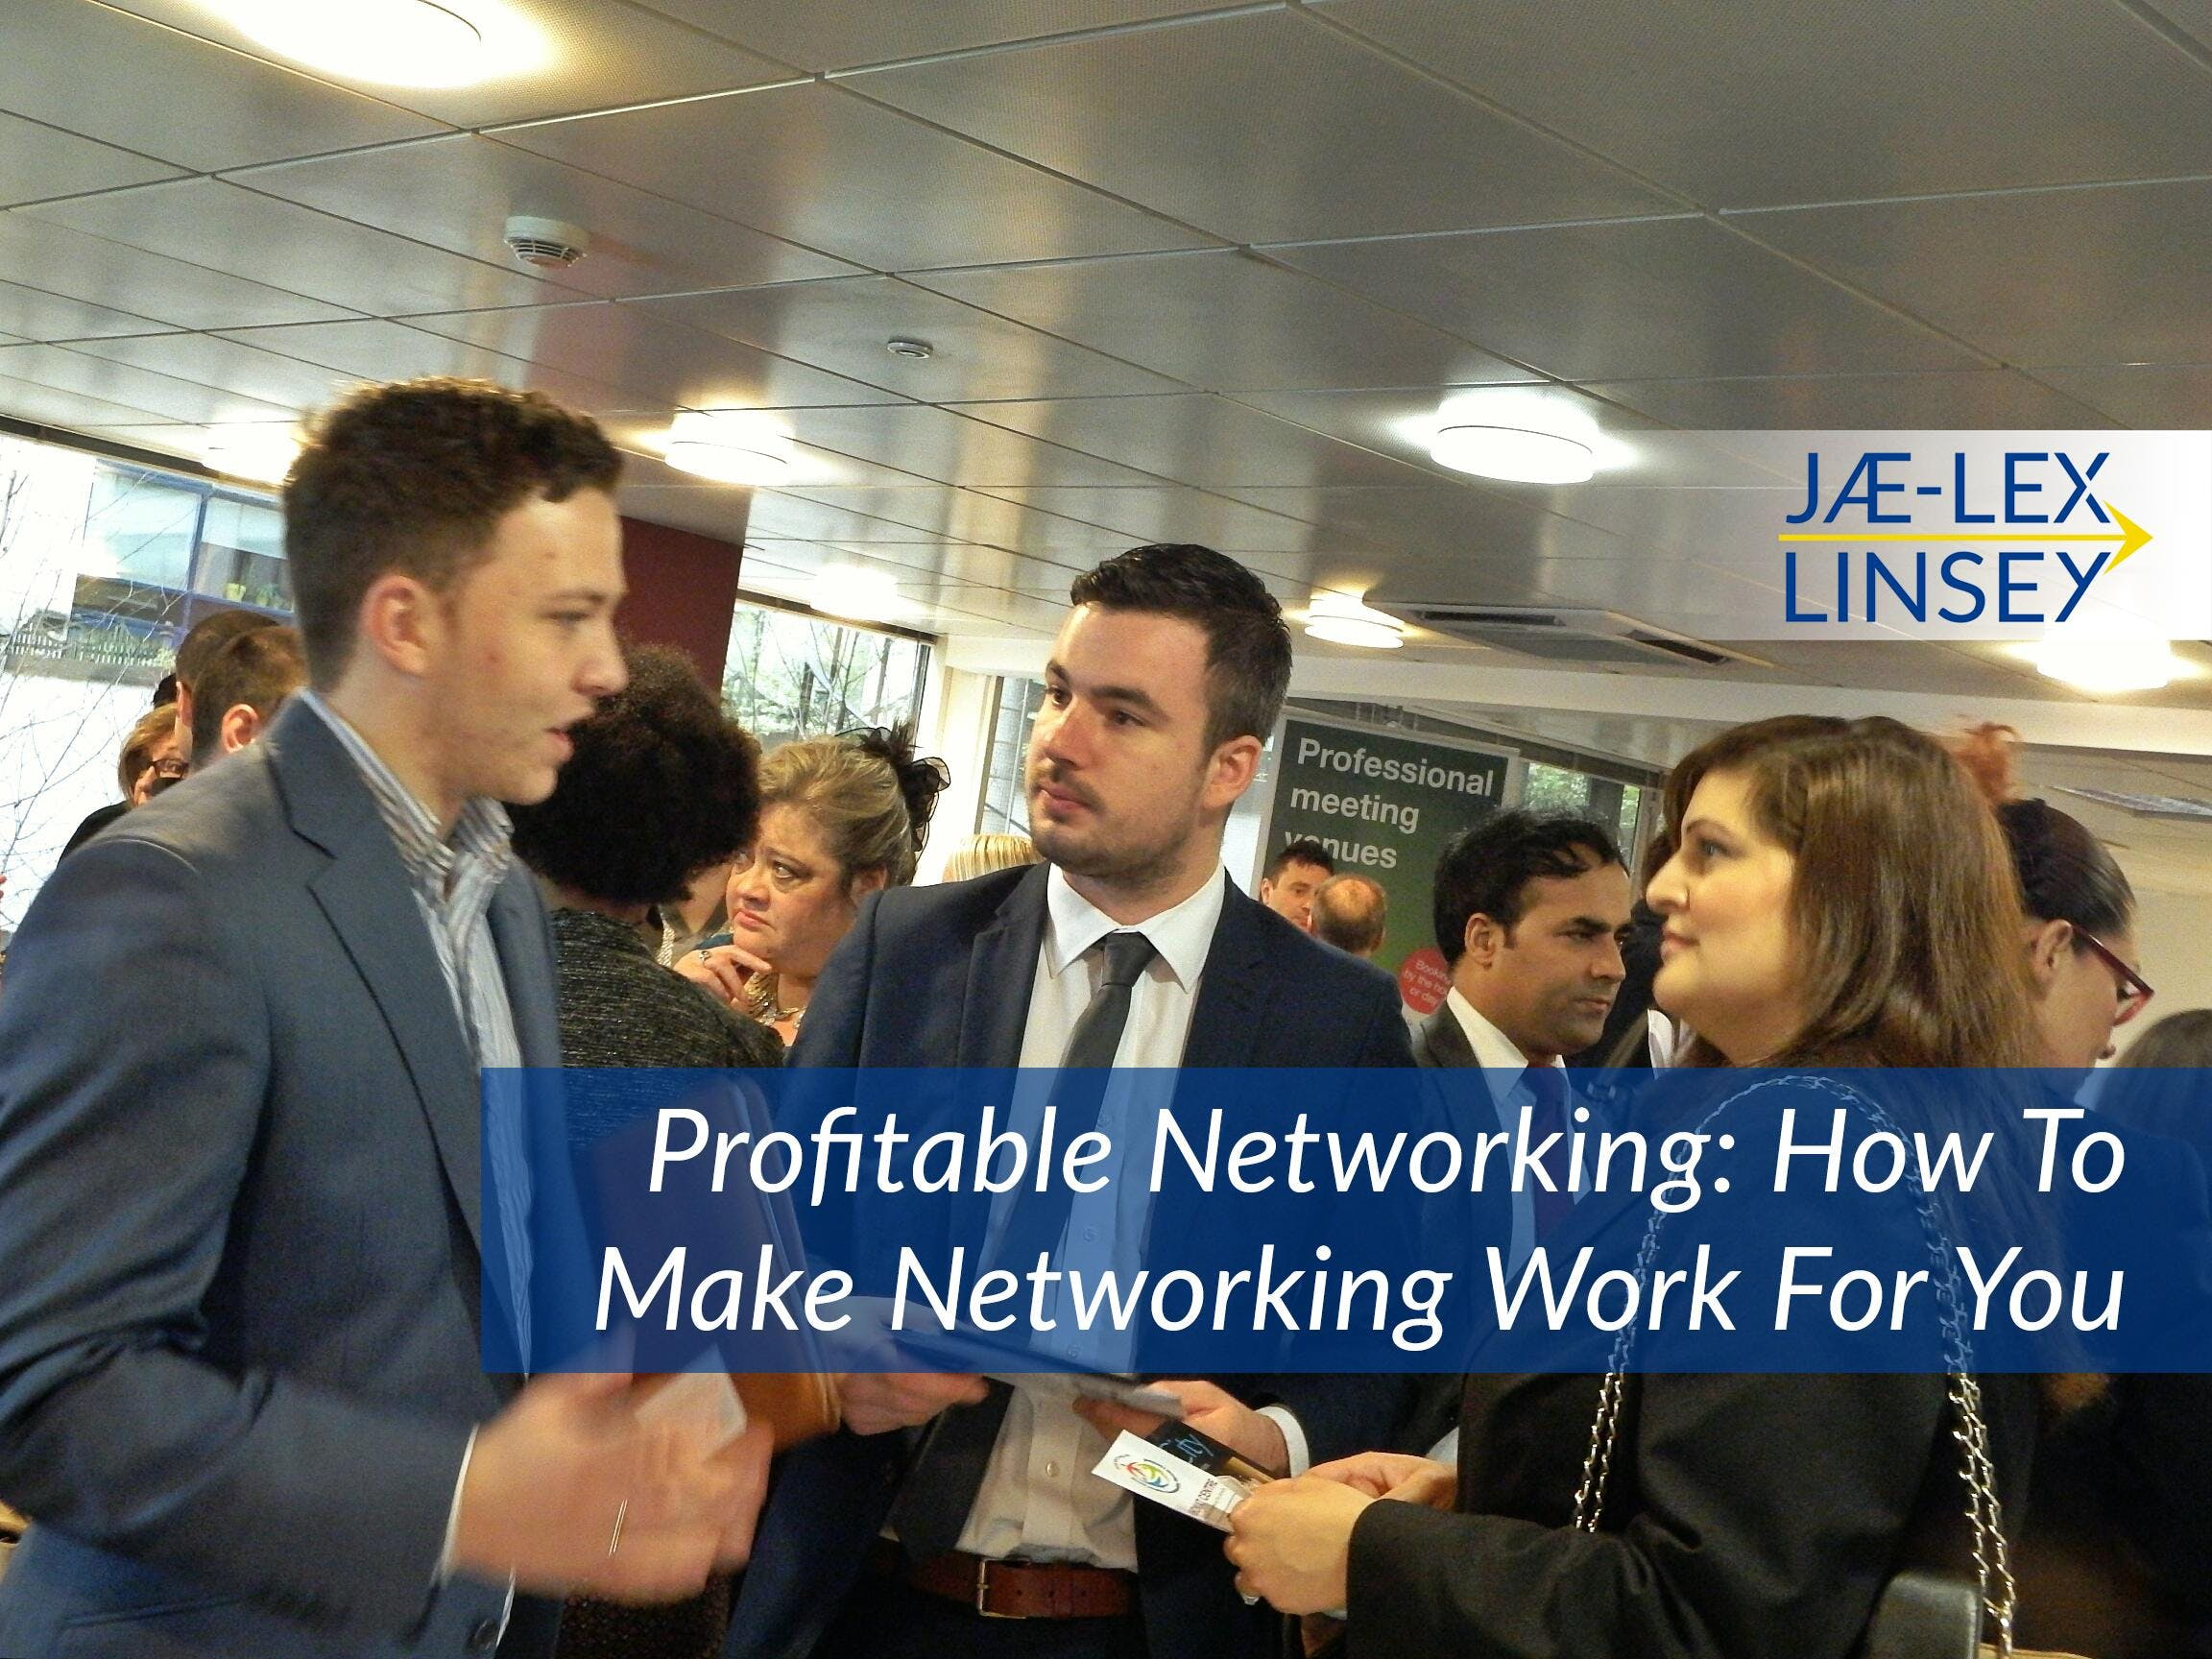 Profitable Networking: How To Make Networking Work For You - Workshop